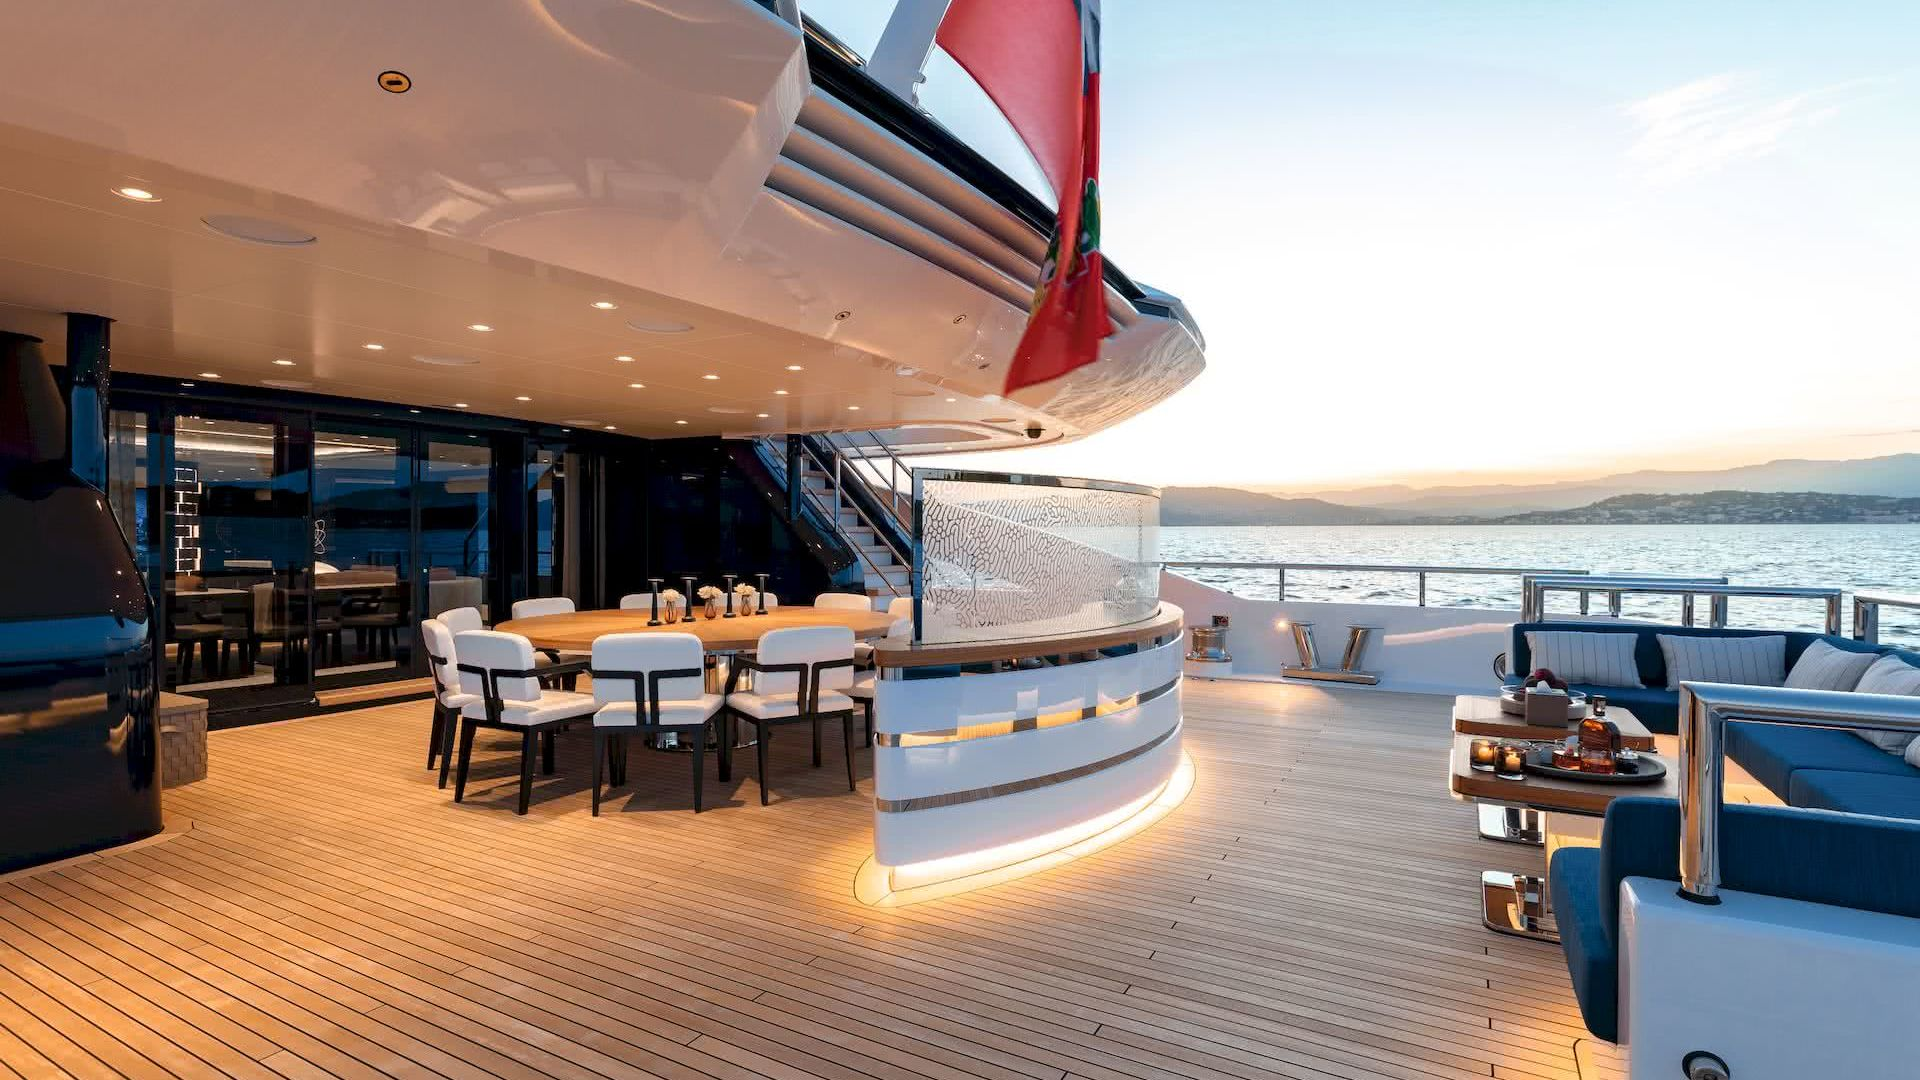 Soaring Yacht Exterior Space